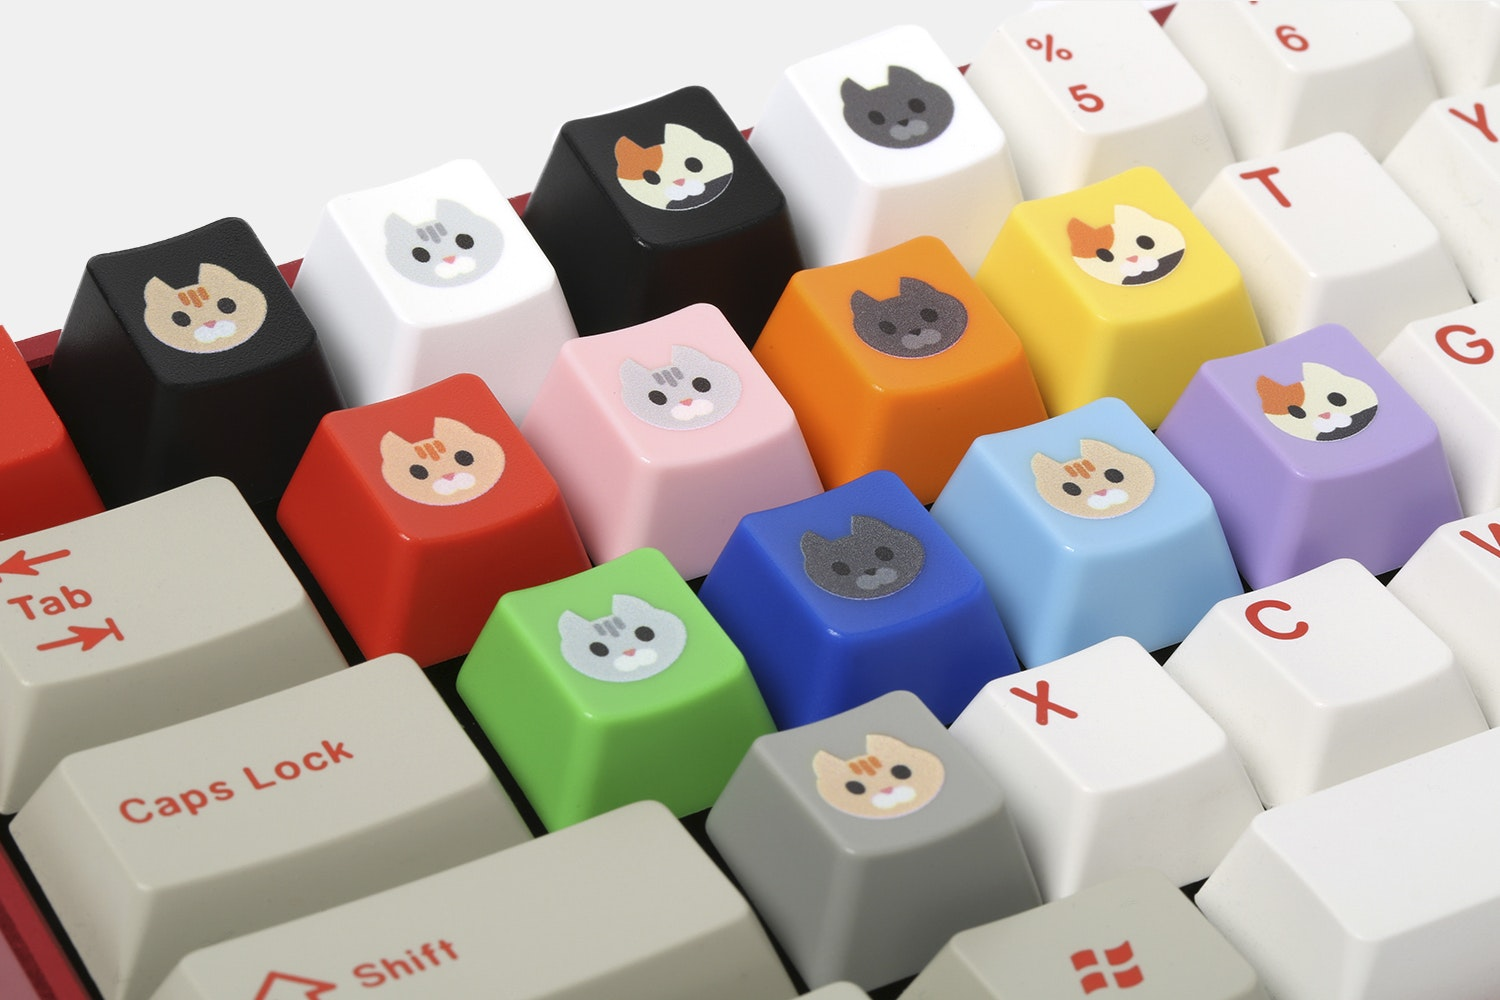 WASD Keyboards Cherry Cat Novelty Keycaps (4-Pack)